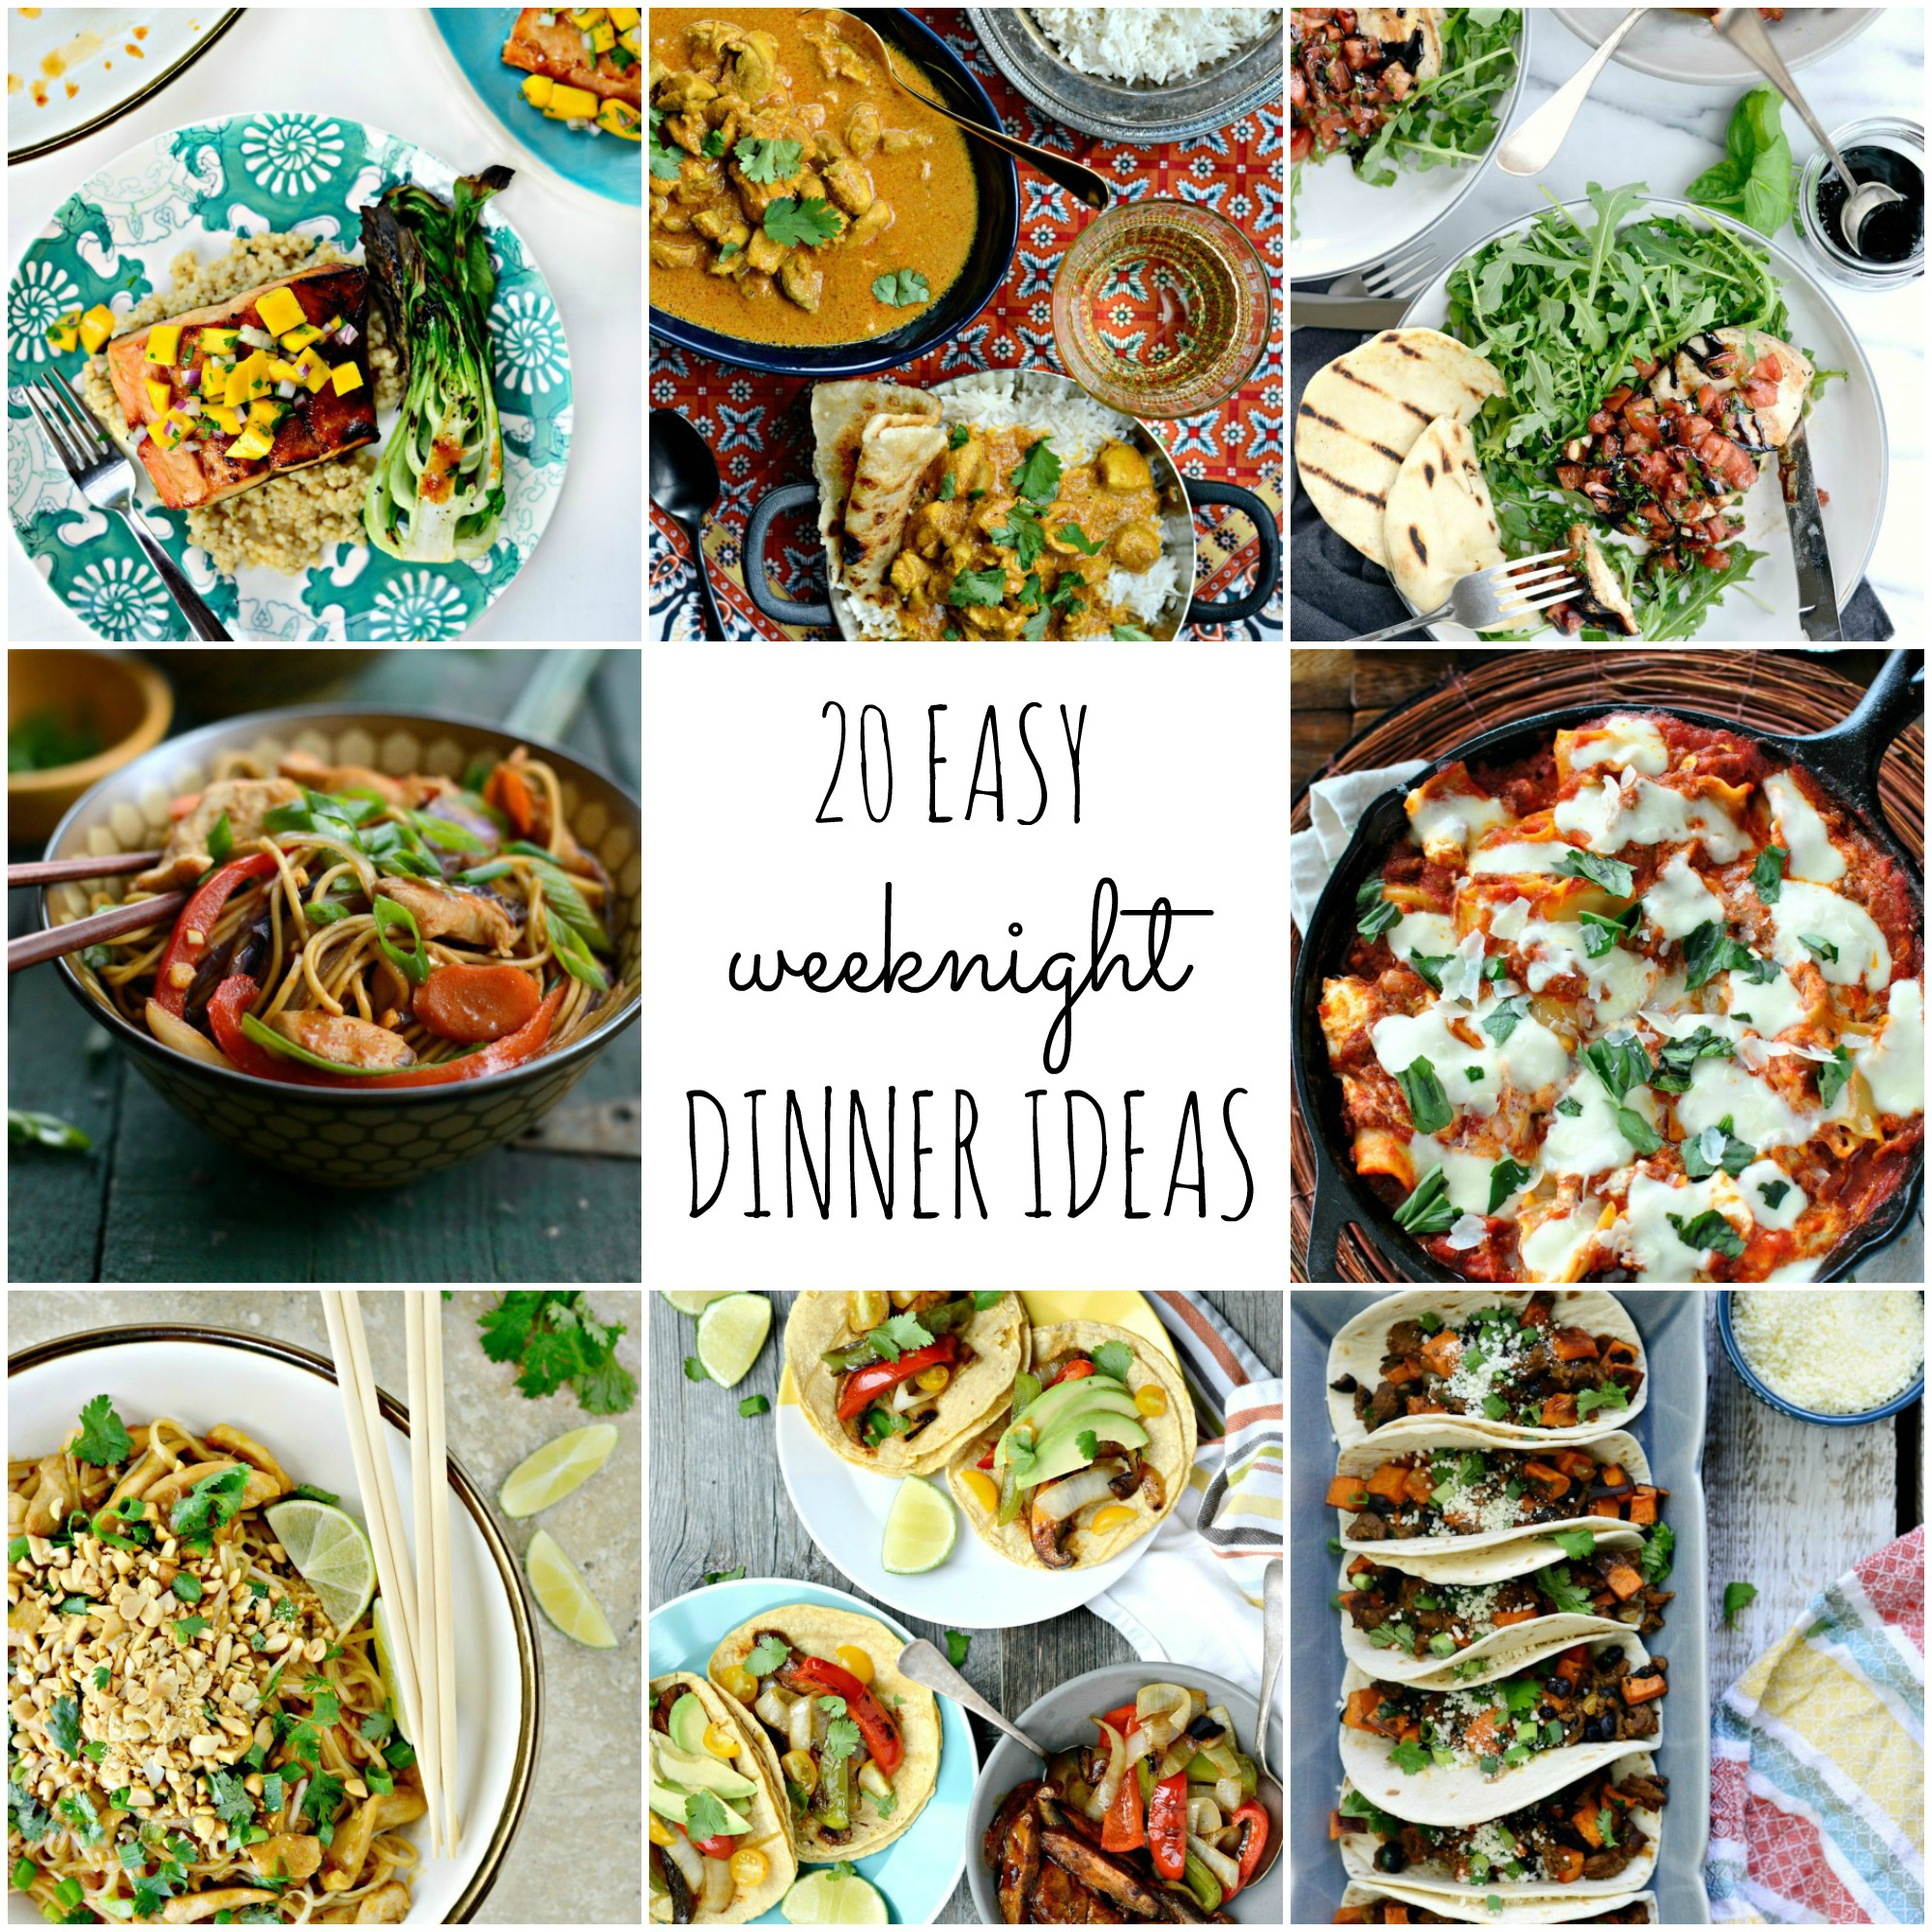 Simply Scratch 20 Easy Weeknight Dinner Ideas